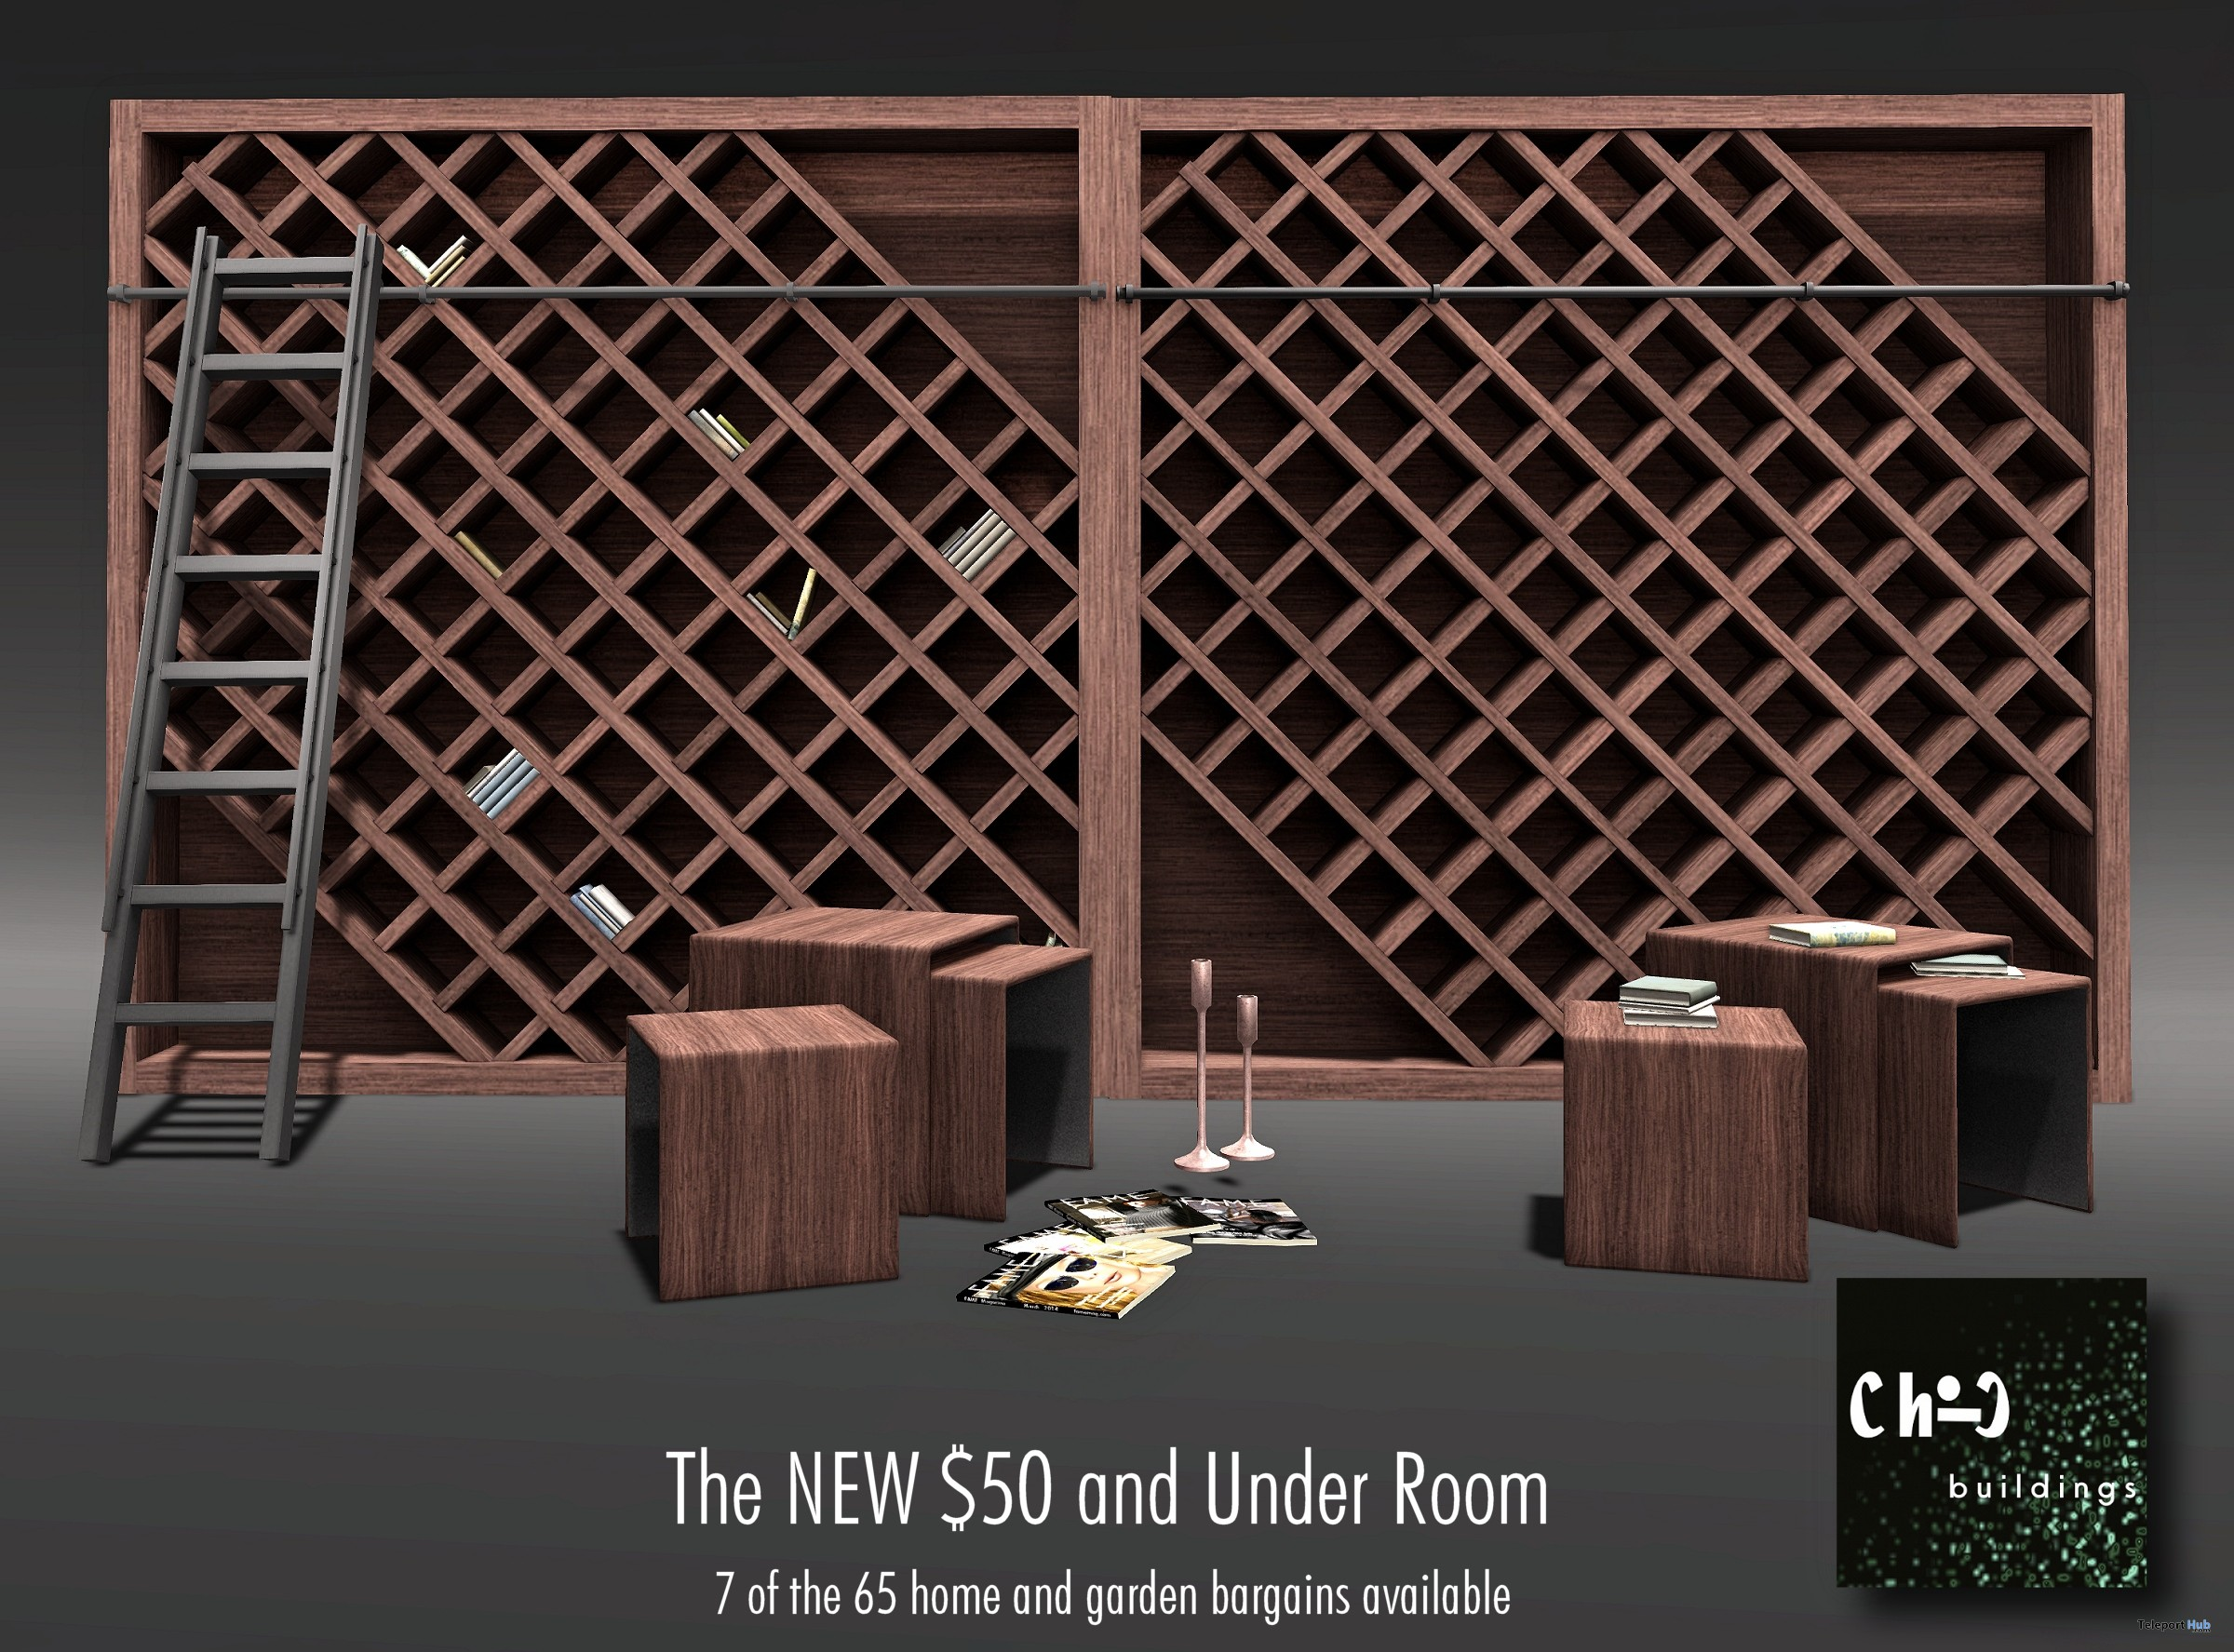 50 Linden and Under Room Promo by ChiC buildings - Teleport Hub - teleporthub.com